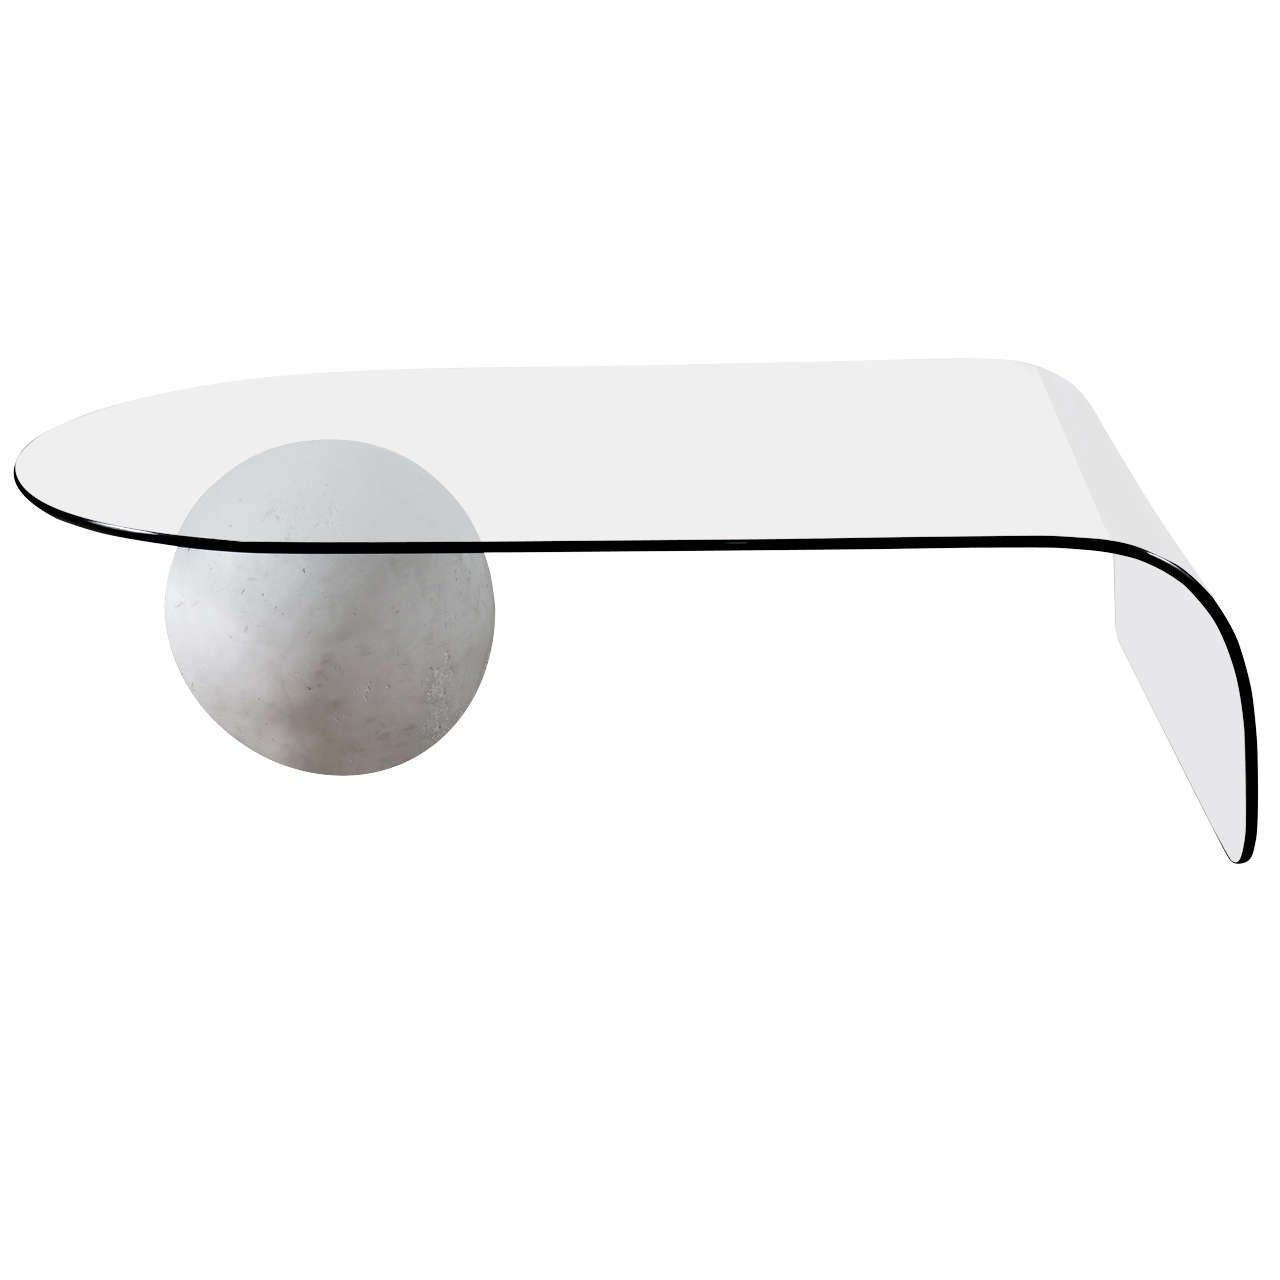 A Glass Coffee Table with a Plaster Ball 1